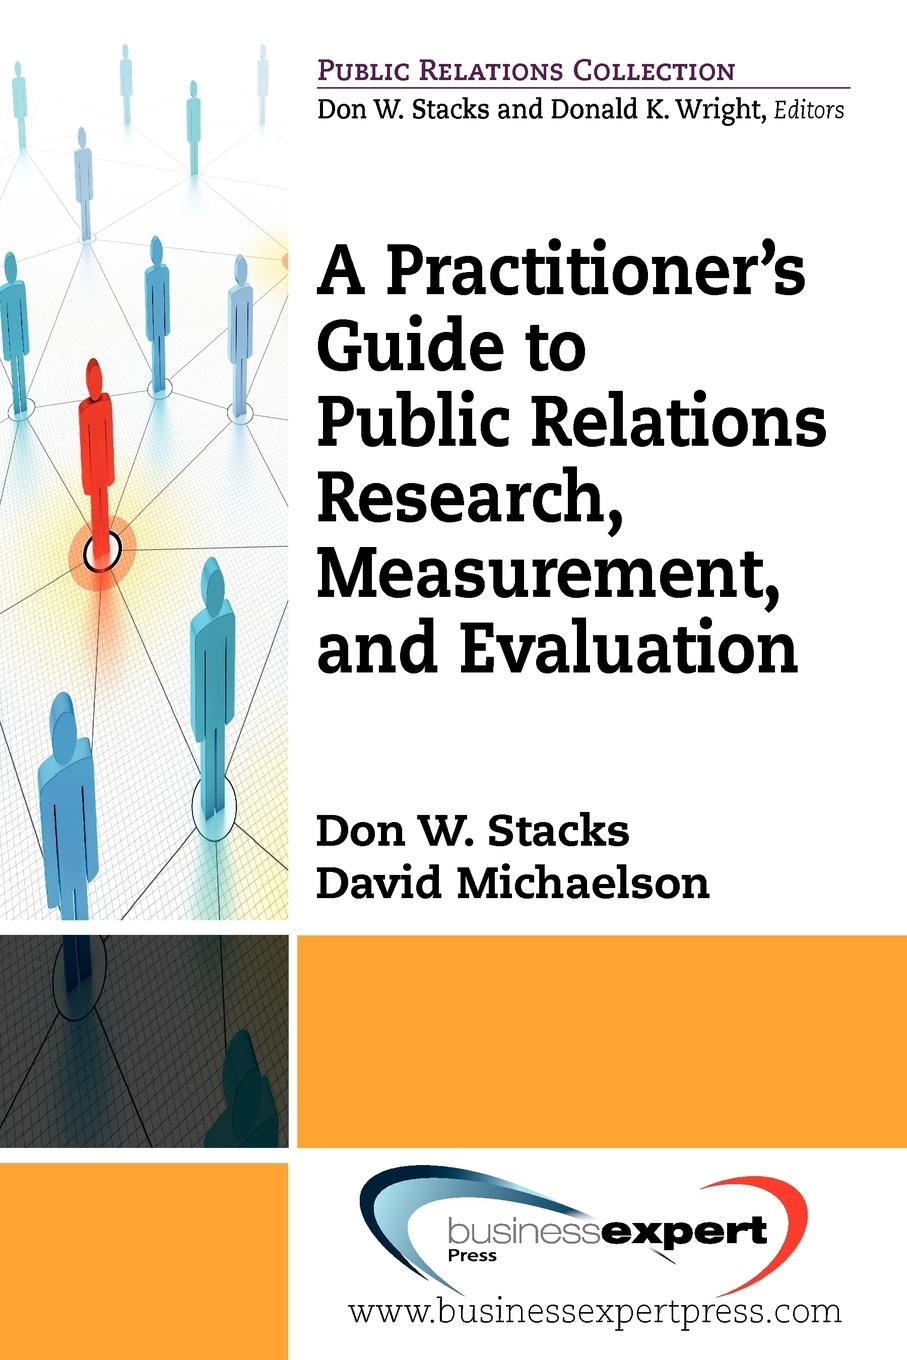 Don Stacks, Michaelson David, Don Stacks A Practioner's Guide to Public Relations Research, Measurement and Evaluation moseley james l handbook of improving performance in the workplace measurement and evaluation